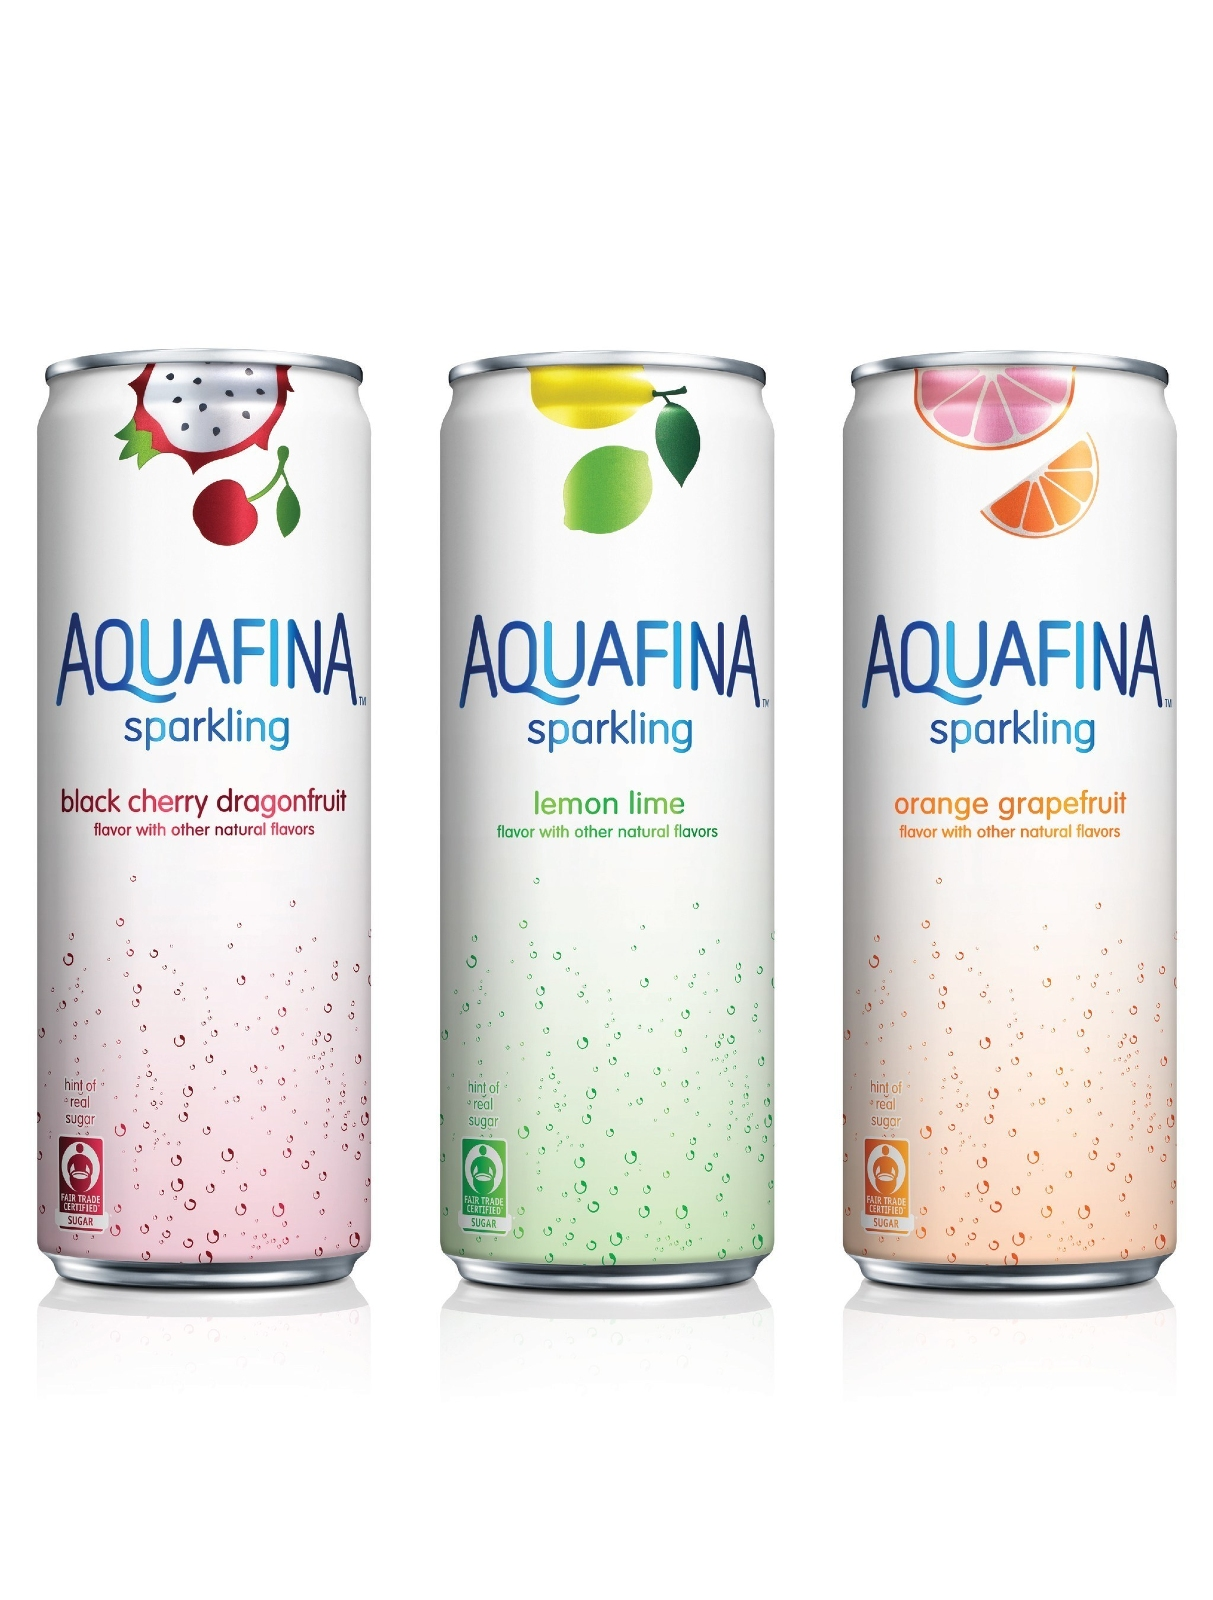 Sparkling New Year S Eve Nails Tutorial: Aquafina Unveils New Line Of Flavored Sparkling Waters